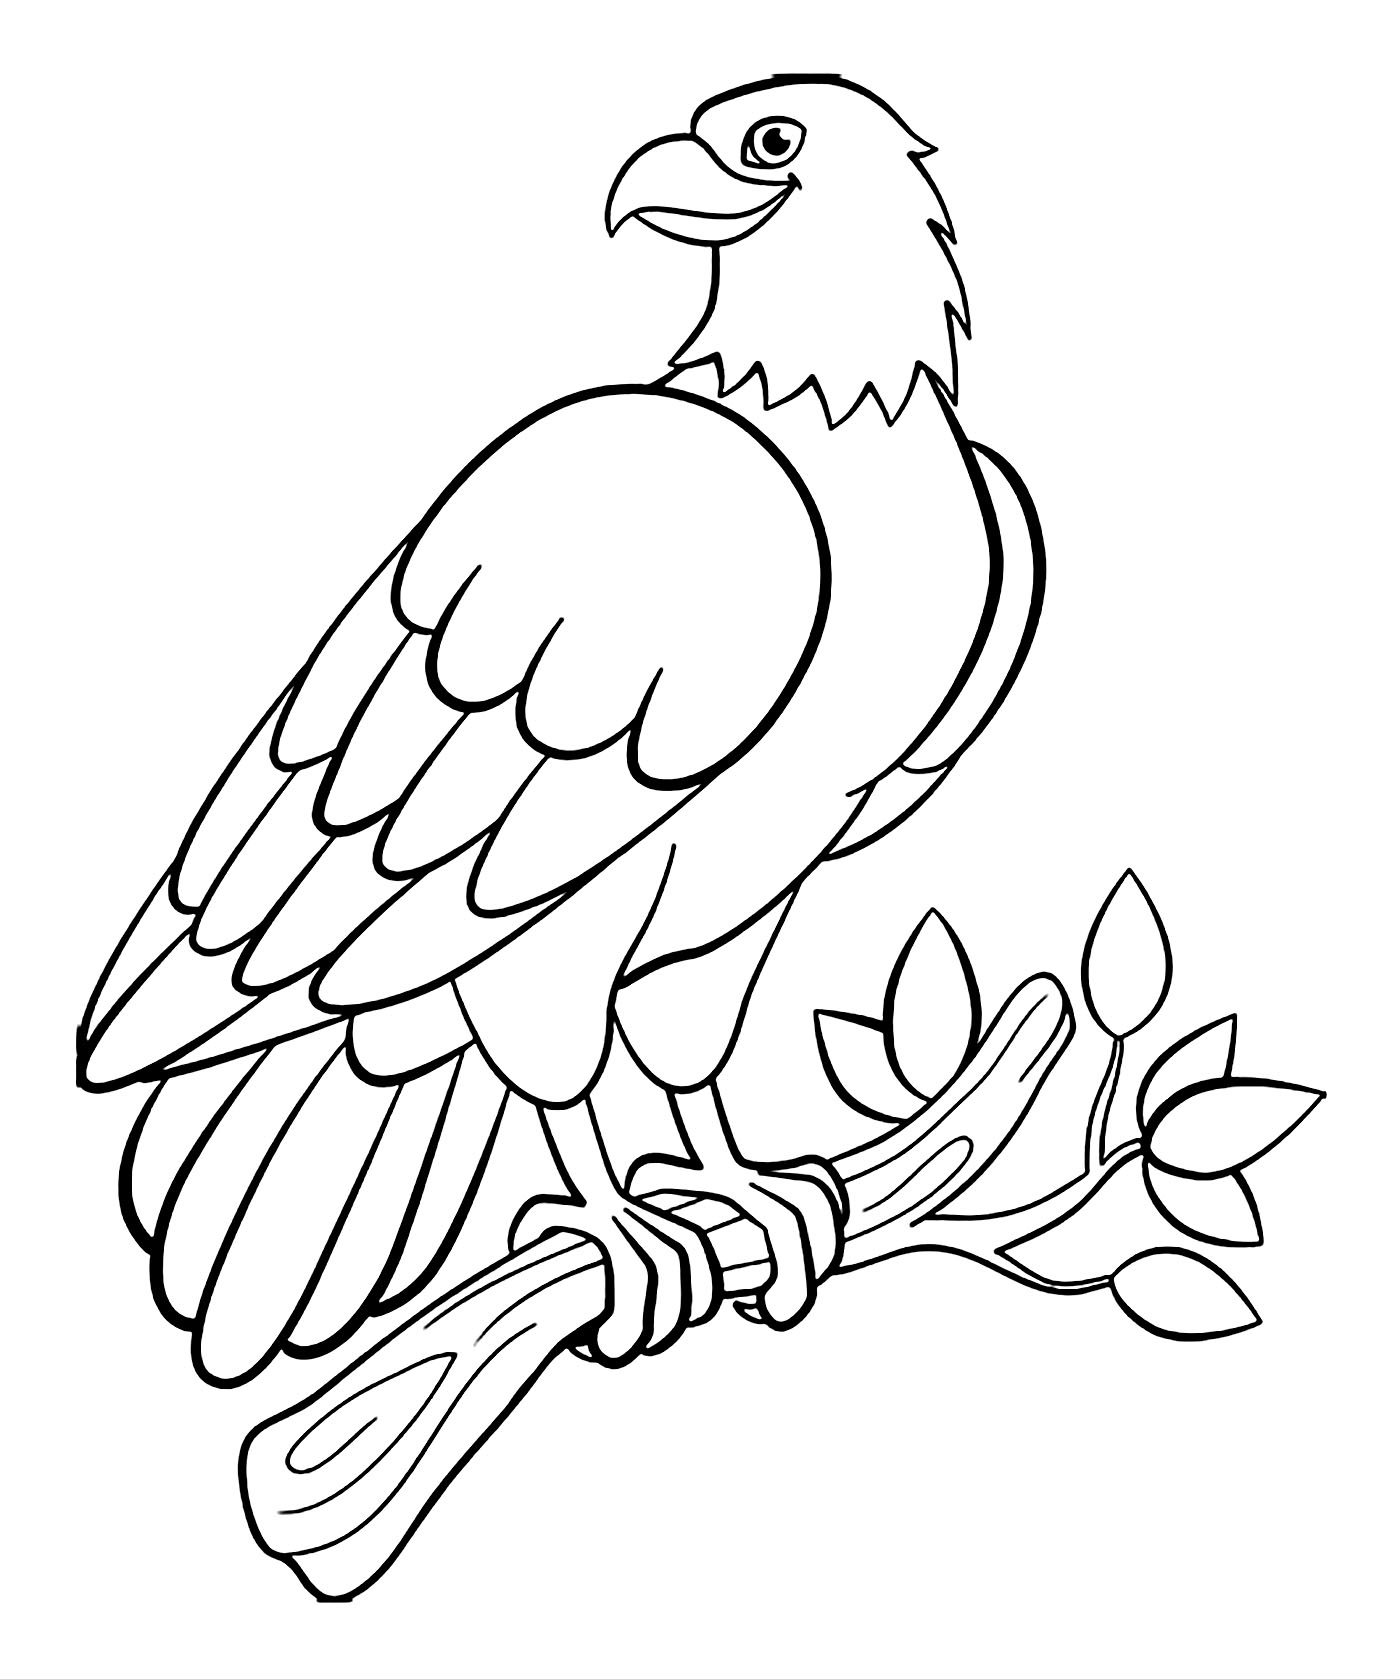 bird colouring in bird coloring pages colouring bird in